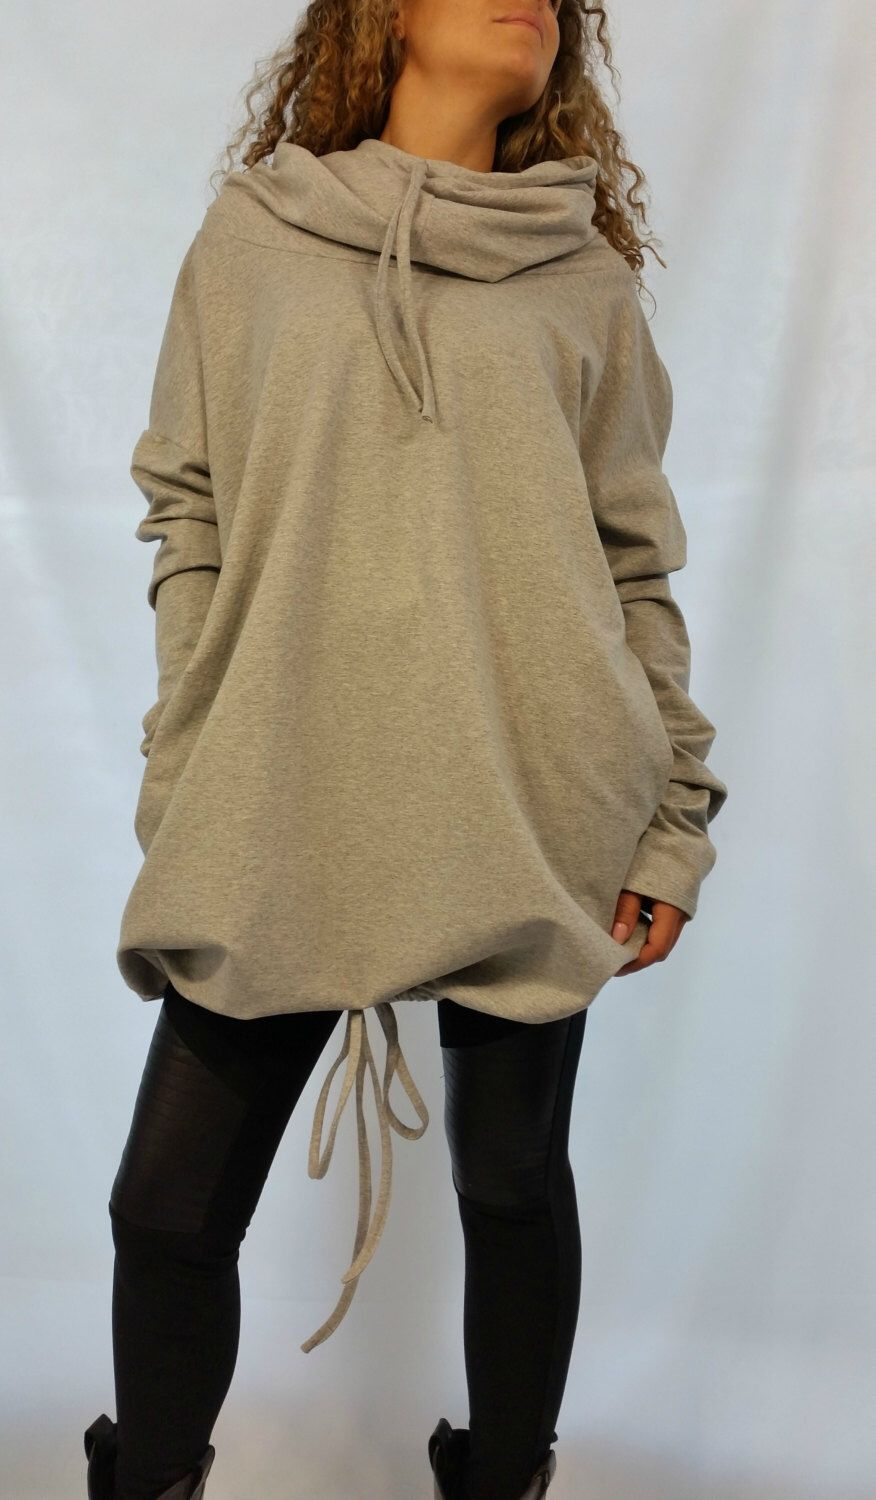 Oversize Loose Hooded Cape Top Long Sleeves Women Tunic Maxi ...